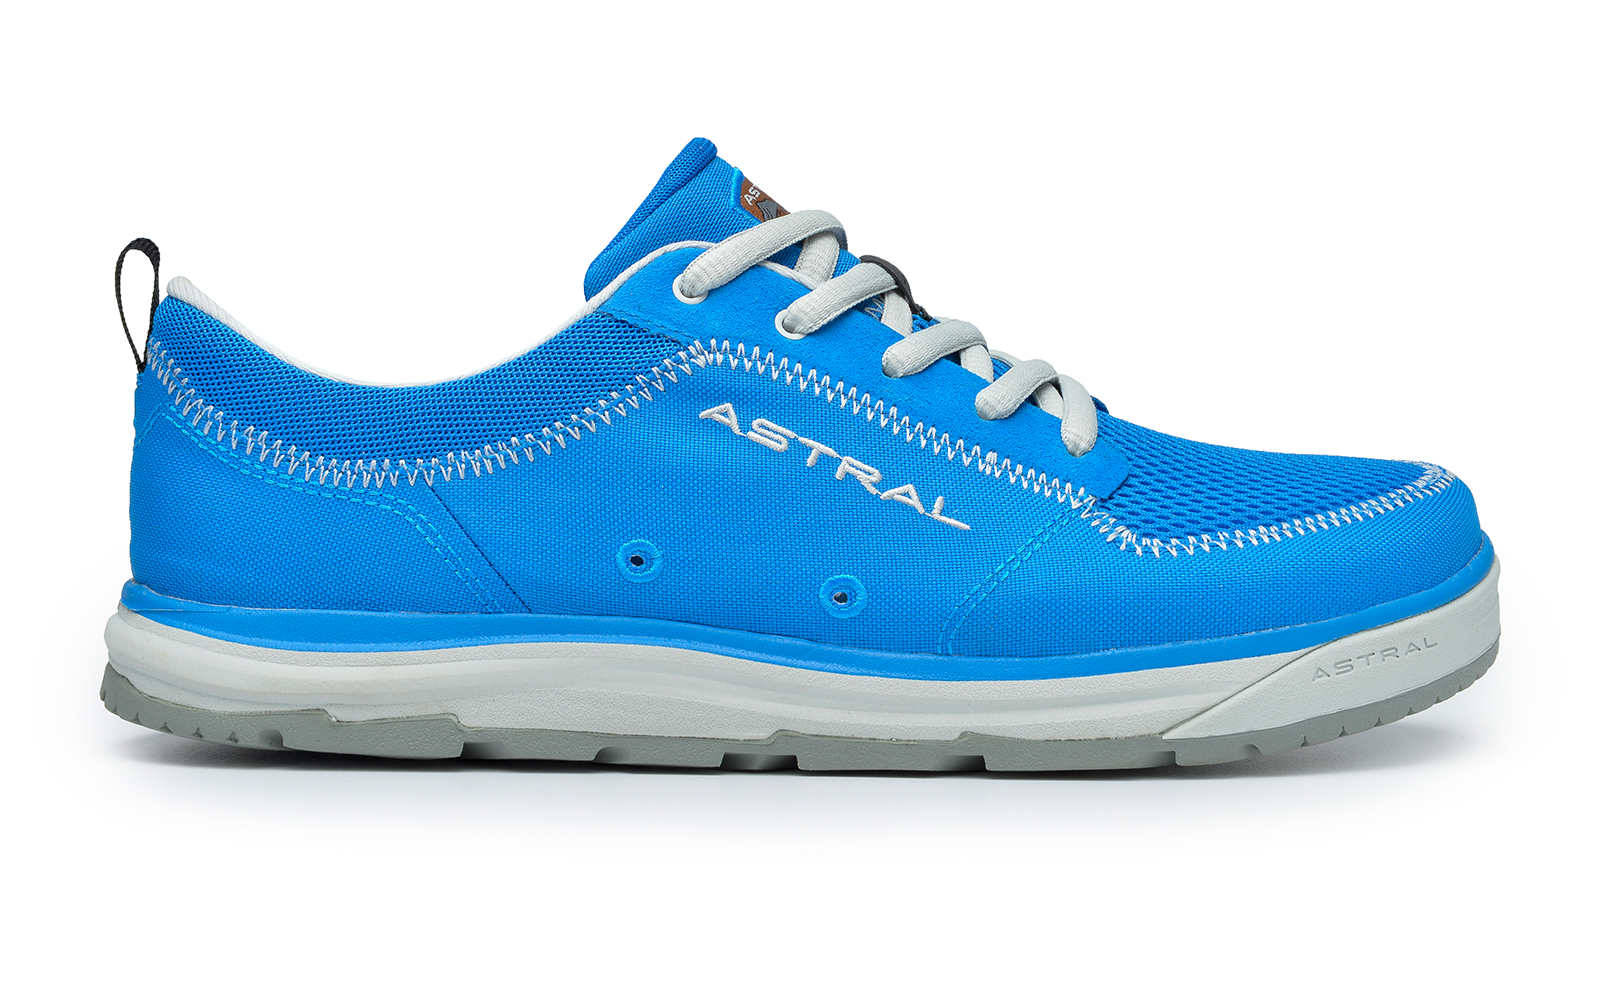 Astral Brewer 2.0 Water Shoes - Men's FTRBRM-601-090-DEMO with Free S&H —  CampSaver